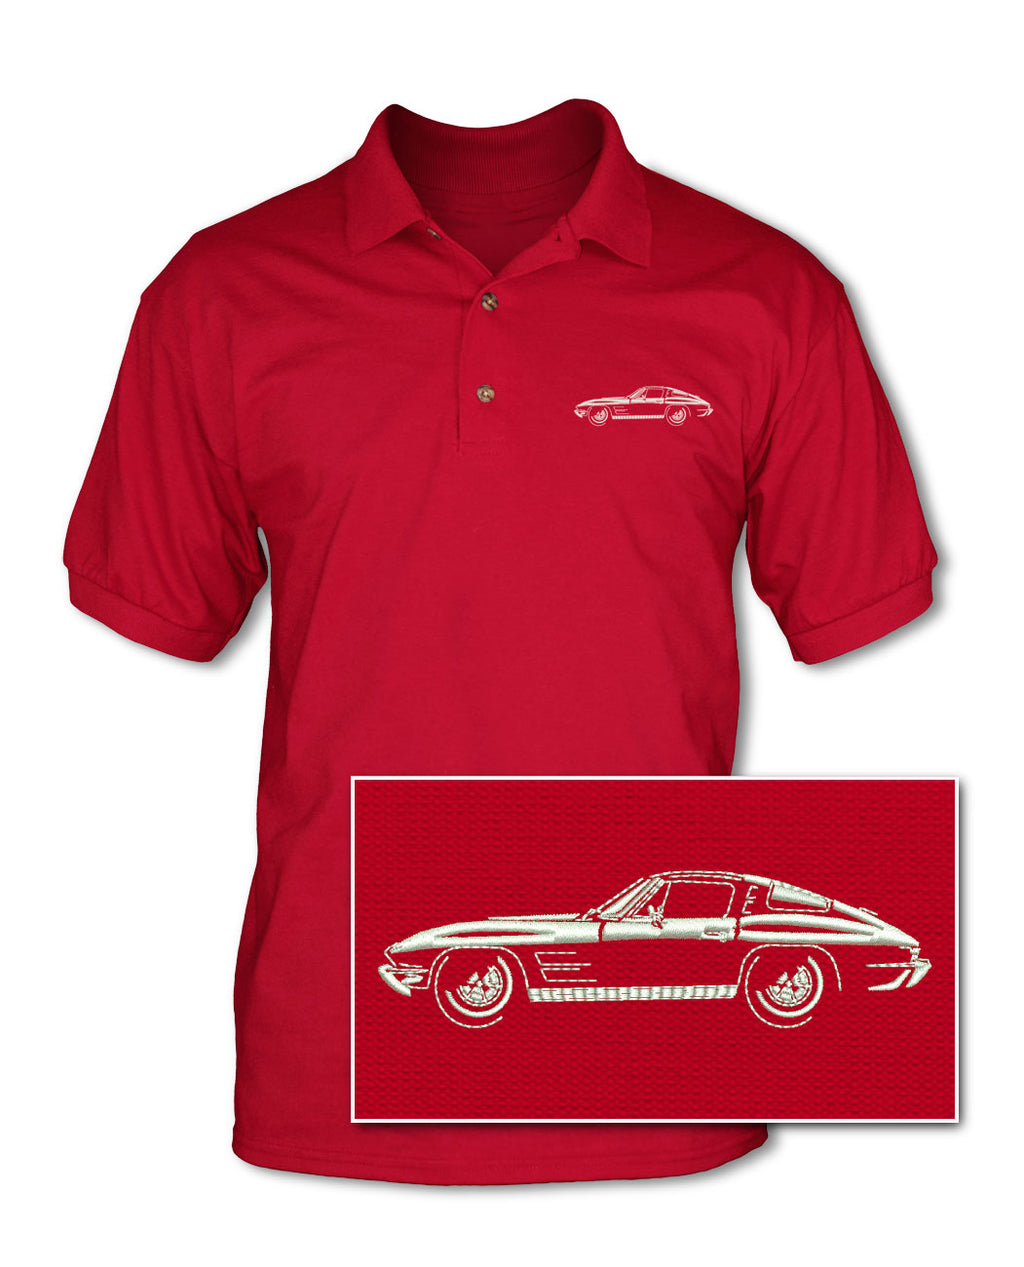 1963 Chevrolet Corvette Sting Ray Split Window C2 Adult Pique Polo Shirt - Side View